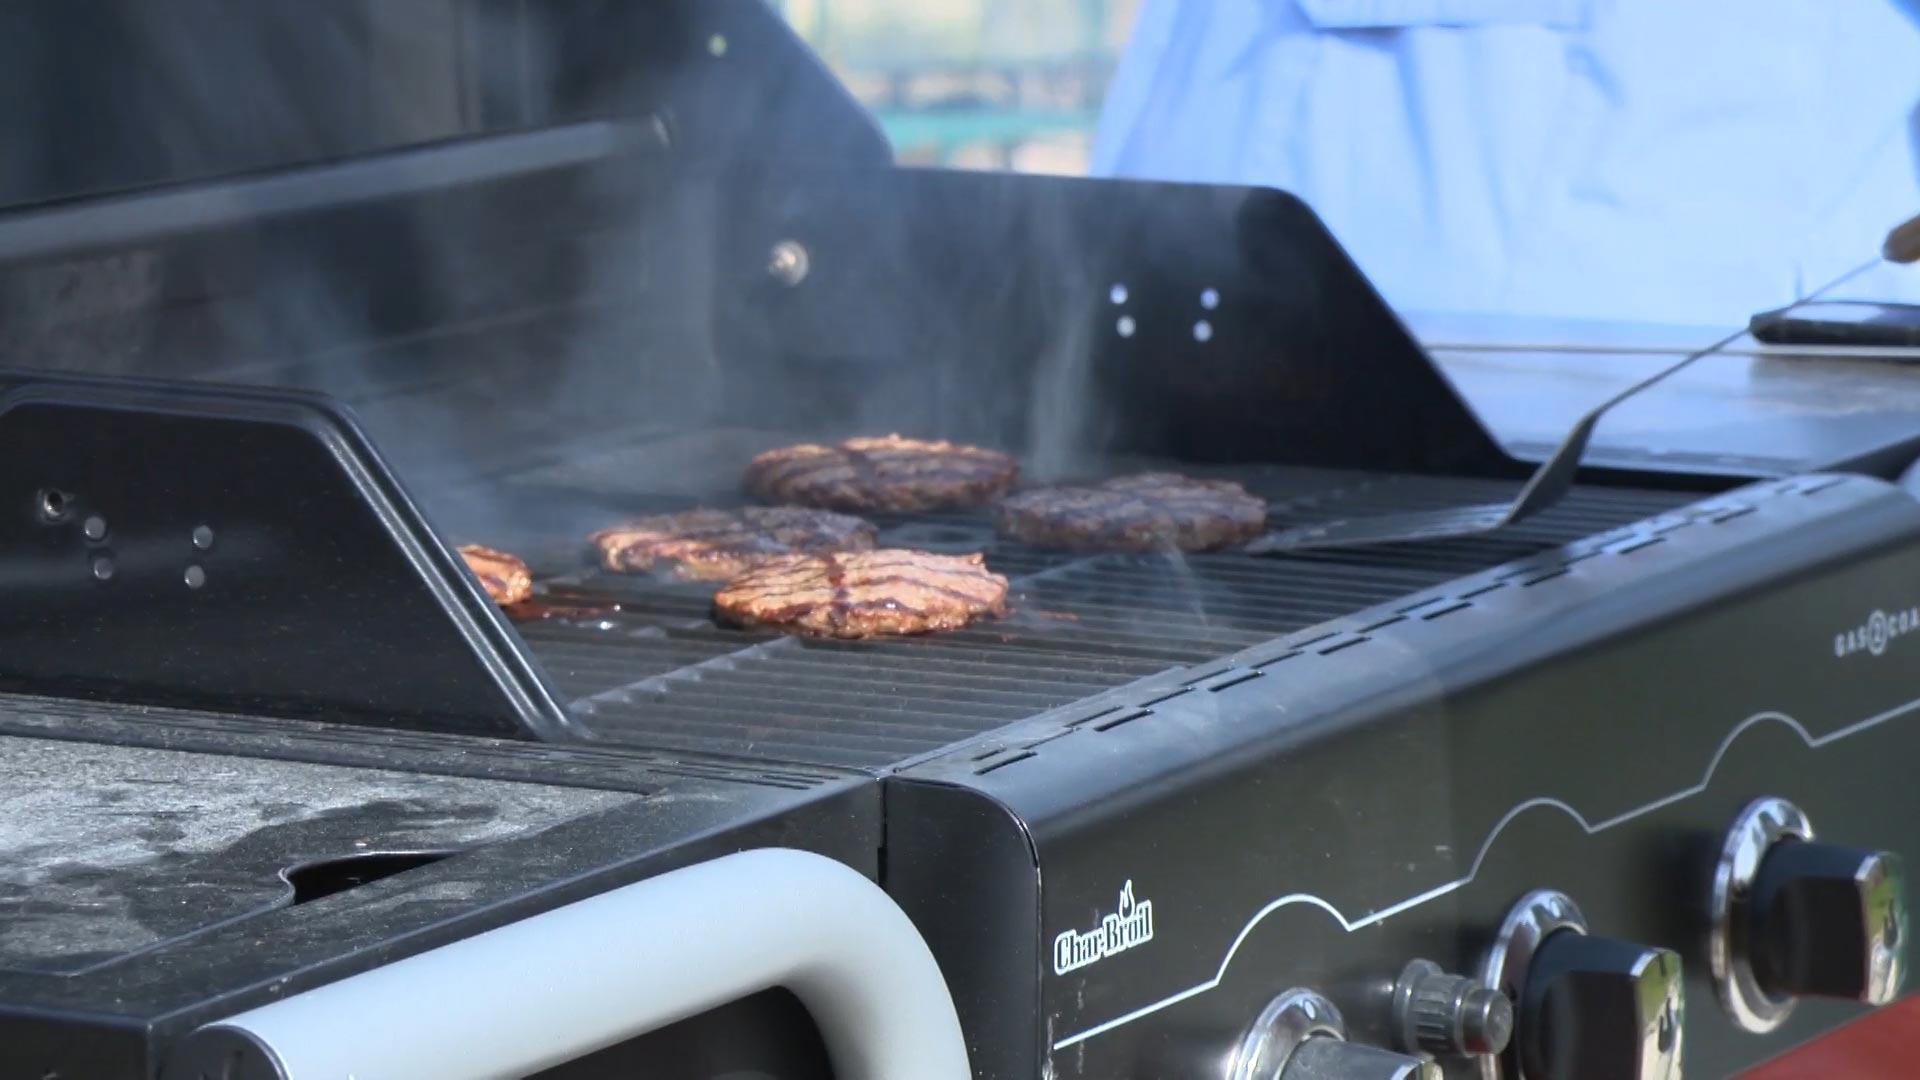 Coal Bbq Hybrid Grill Cook With Gas Or Charcoal Consumer Reports